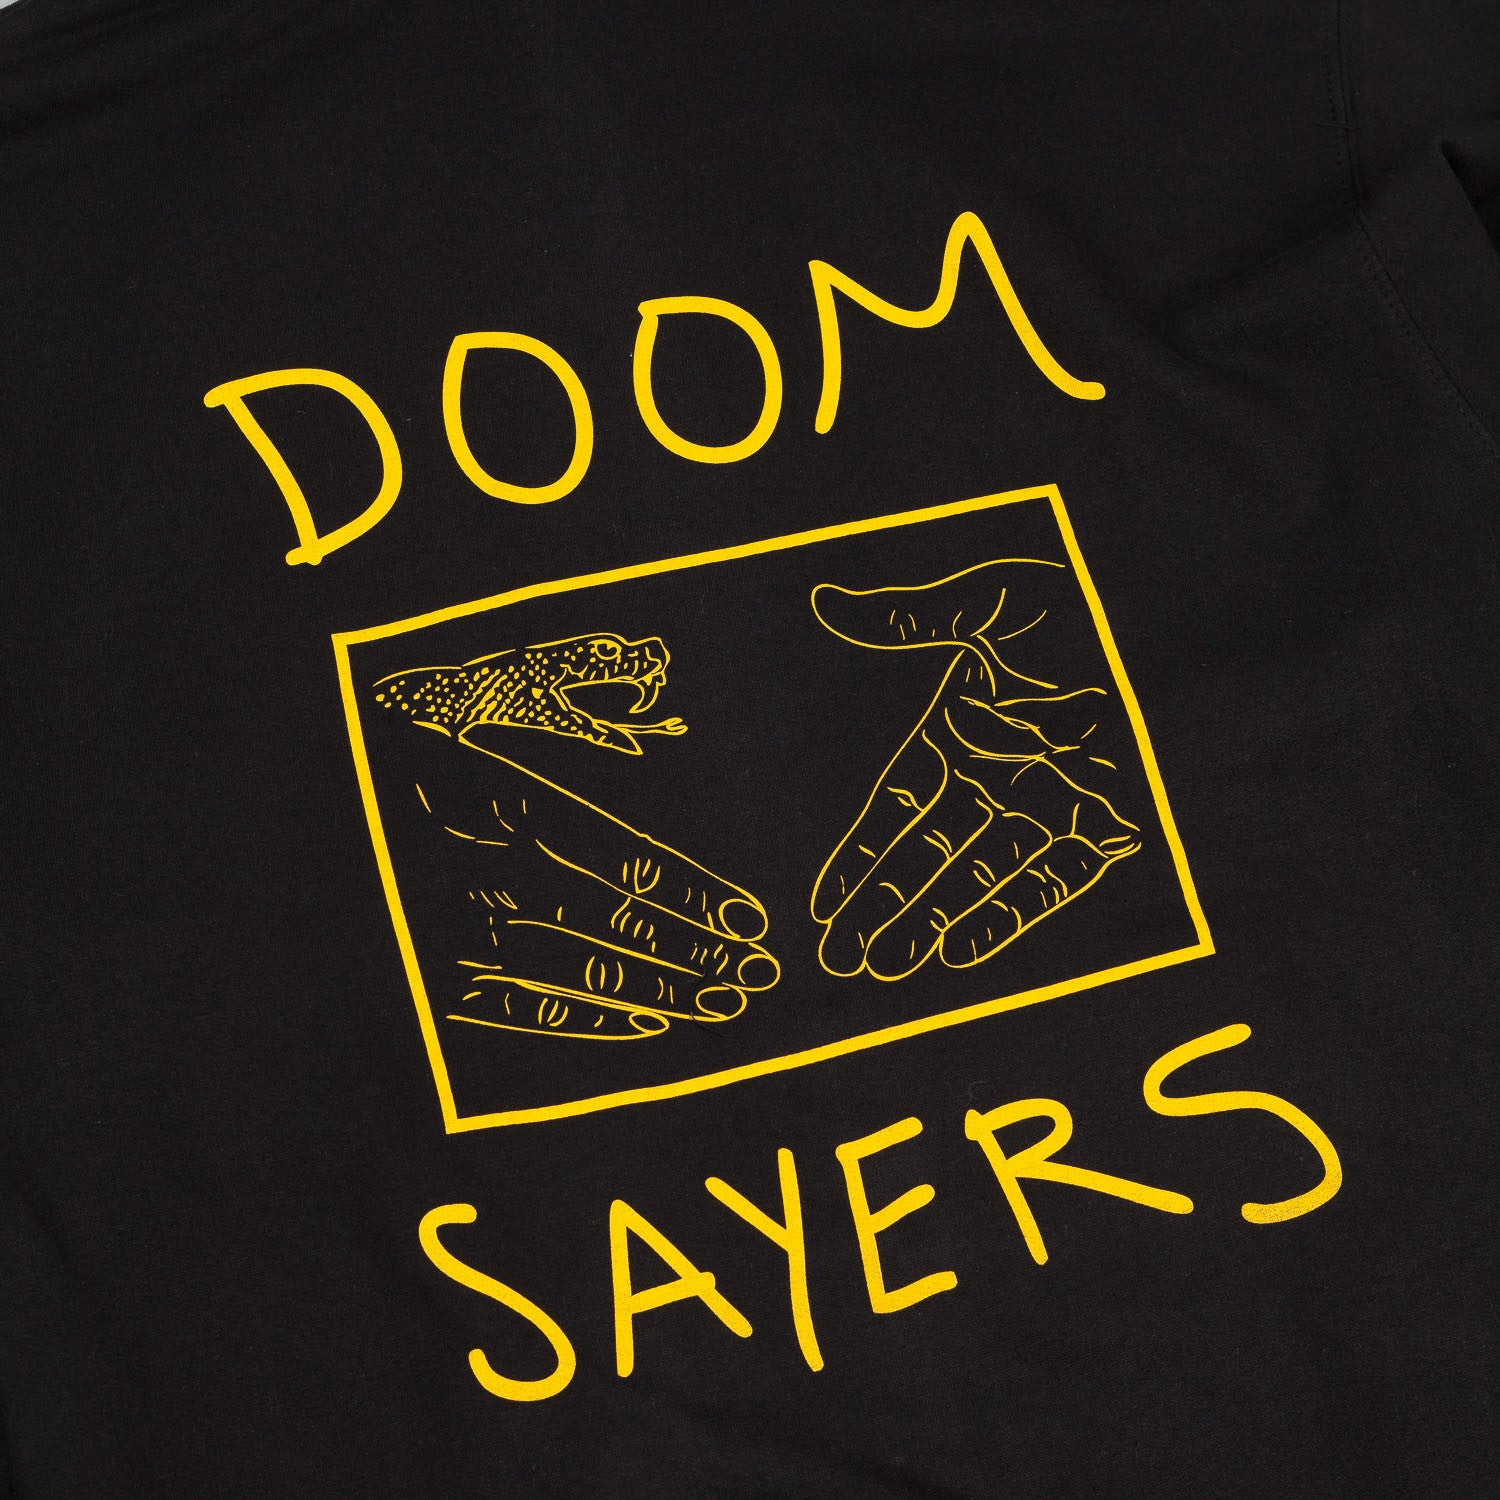 Doomsayers Snake Shake Hooded Sweatshirt Black / Yellow